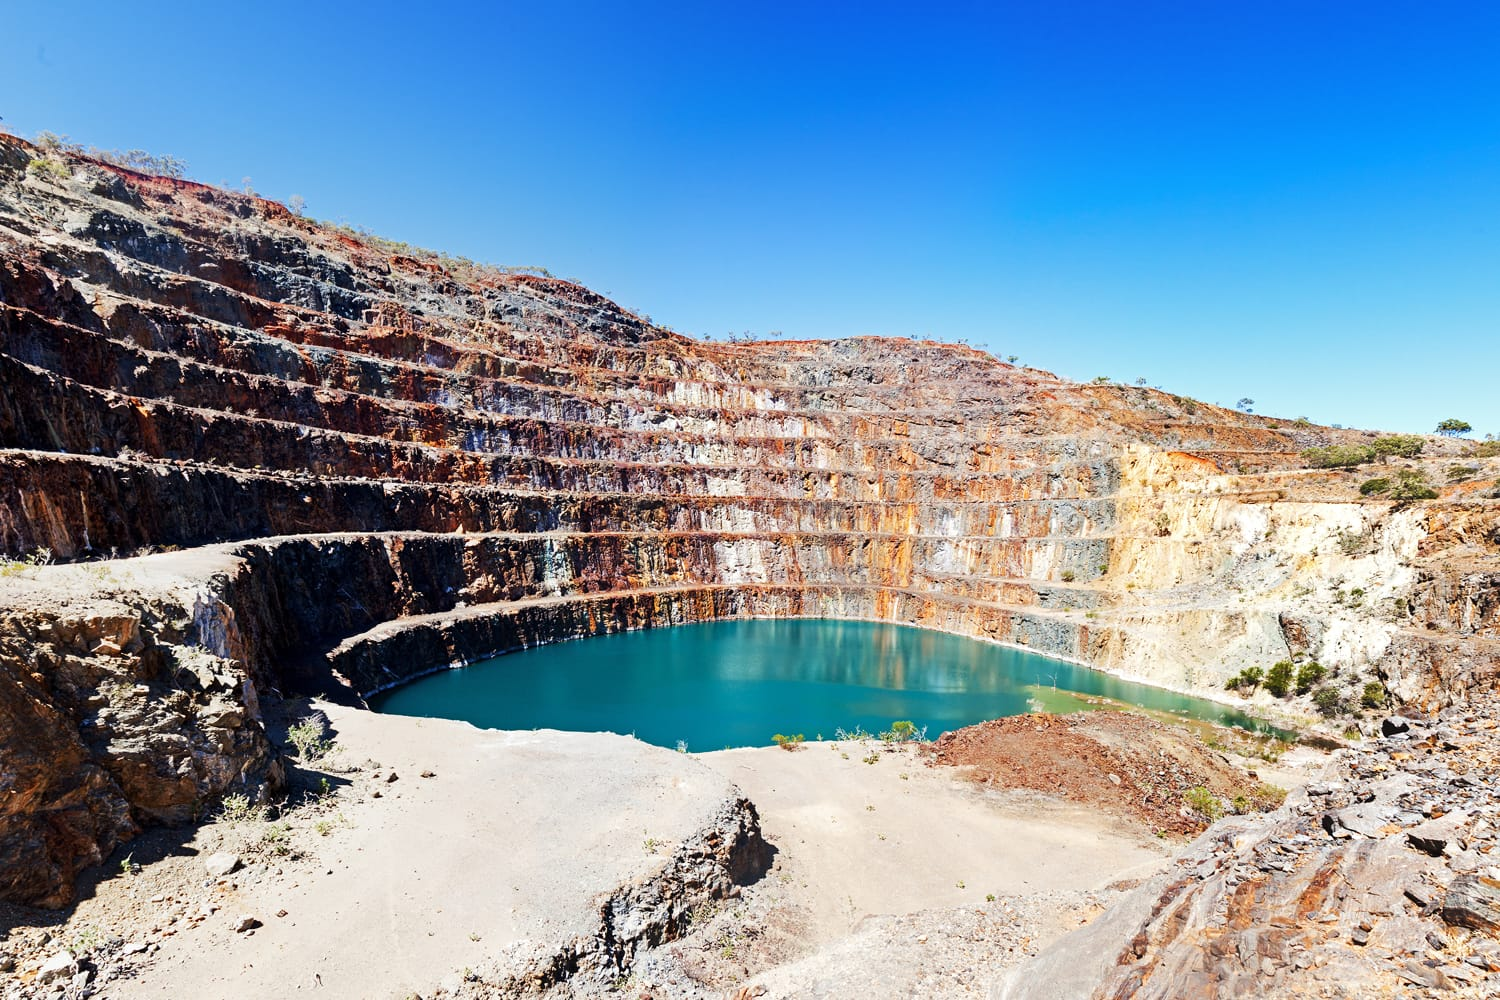 Mary Kathleen mine near Mount Isa in Australia